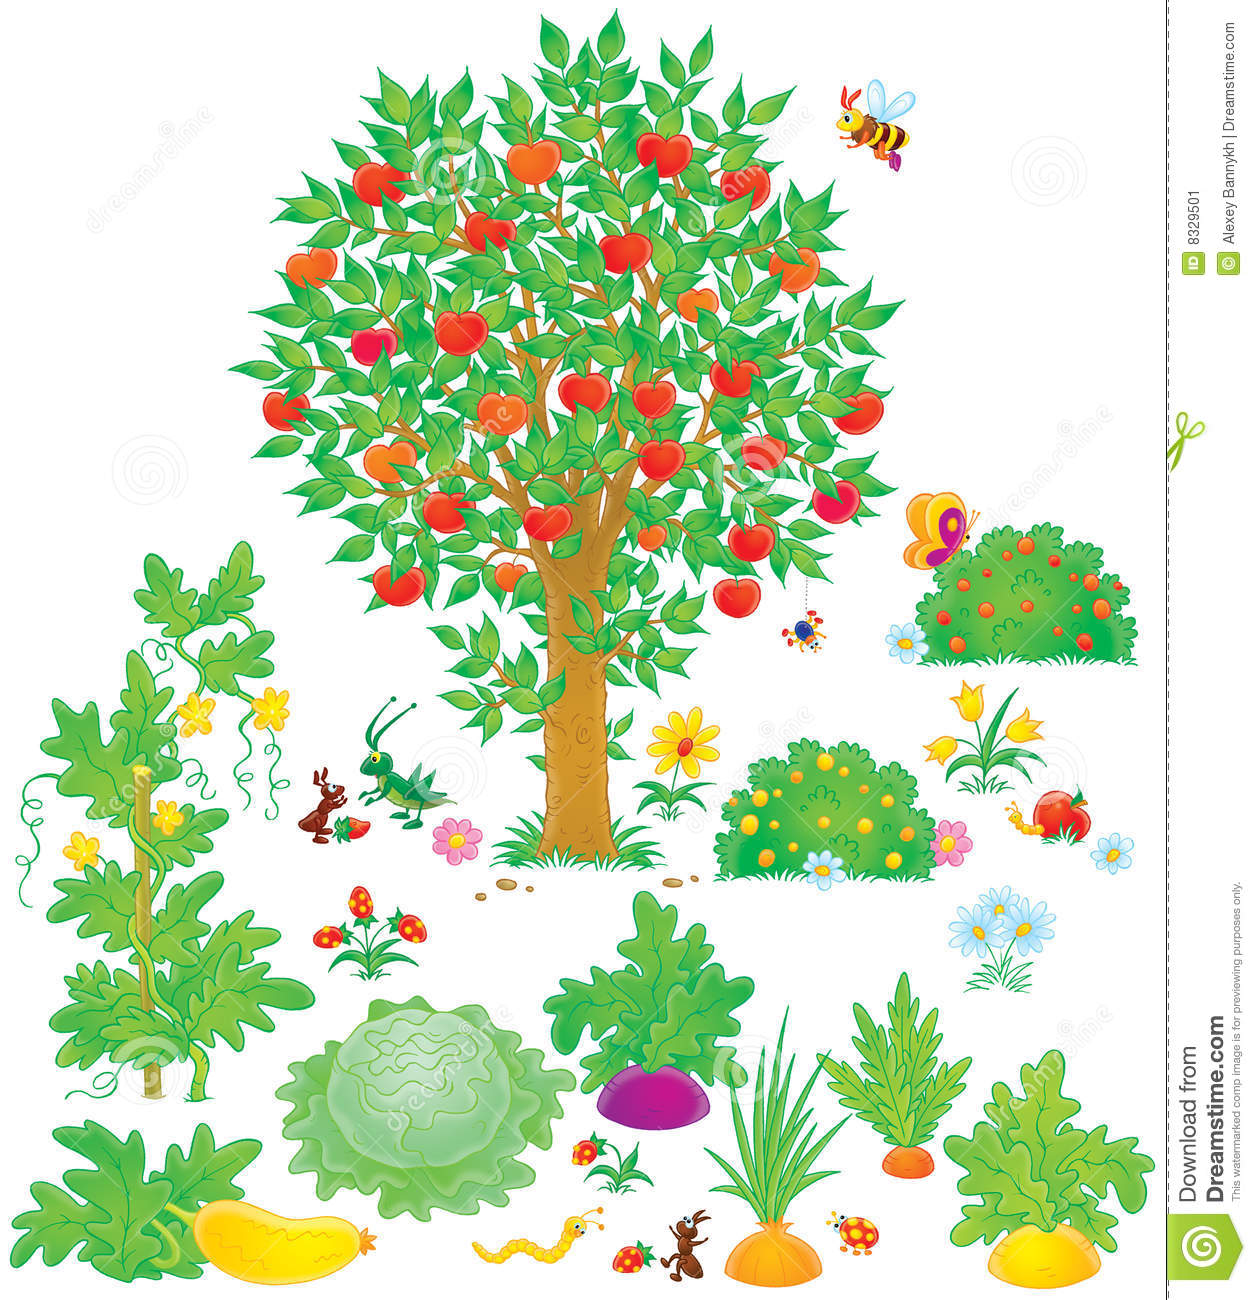 Vegetable garden kids drawing - Orchard And Vegetable Garden Stock Image Image 8329501